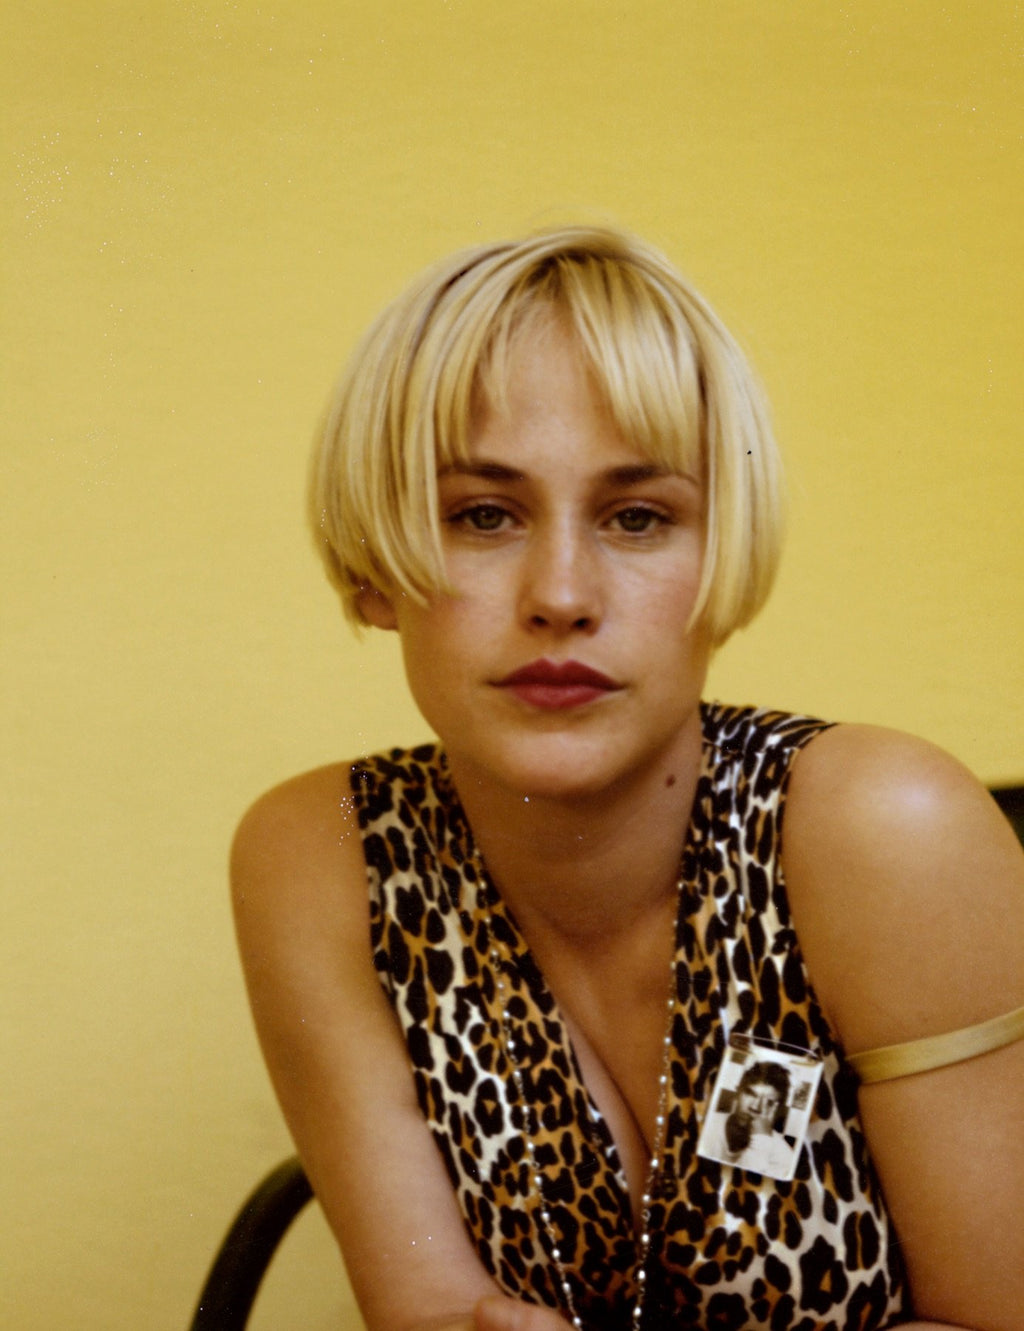 Patricia Arquette - Original Polaroid by Dewey Nicks